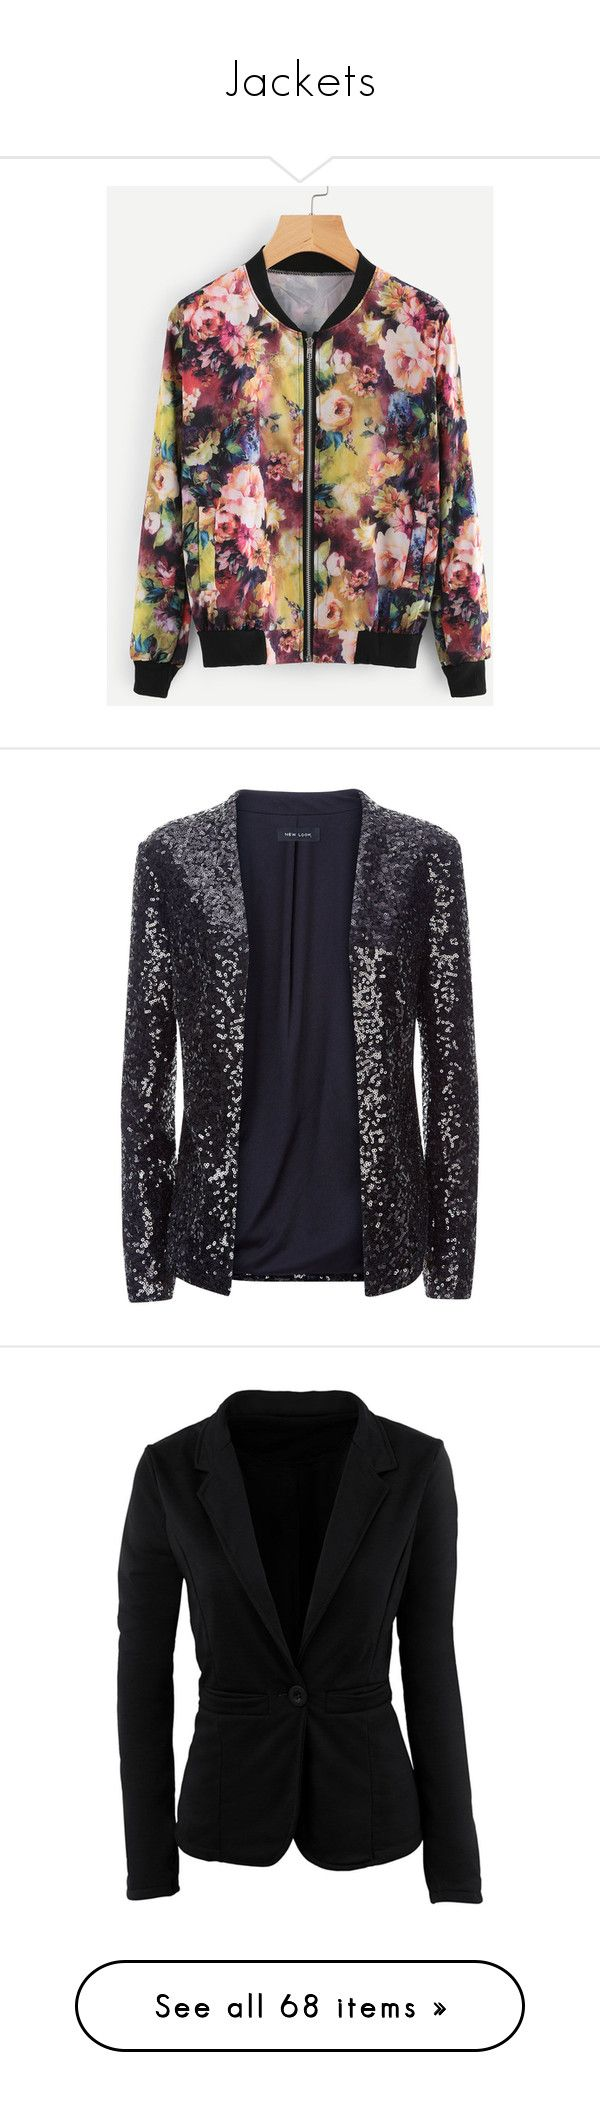 """""""Jackets"""" by sbello ❤ liked on Polyvore featuring outerwear, jackets, floral jacket, floral-print bomber jackets, flower print jacket, blazers, sequin jacket, sequin blazer jacket, sequin blazer and sequined blazer"""